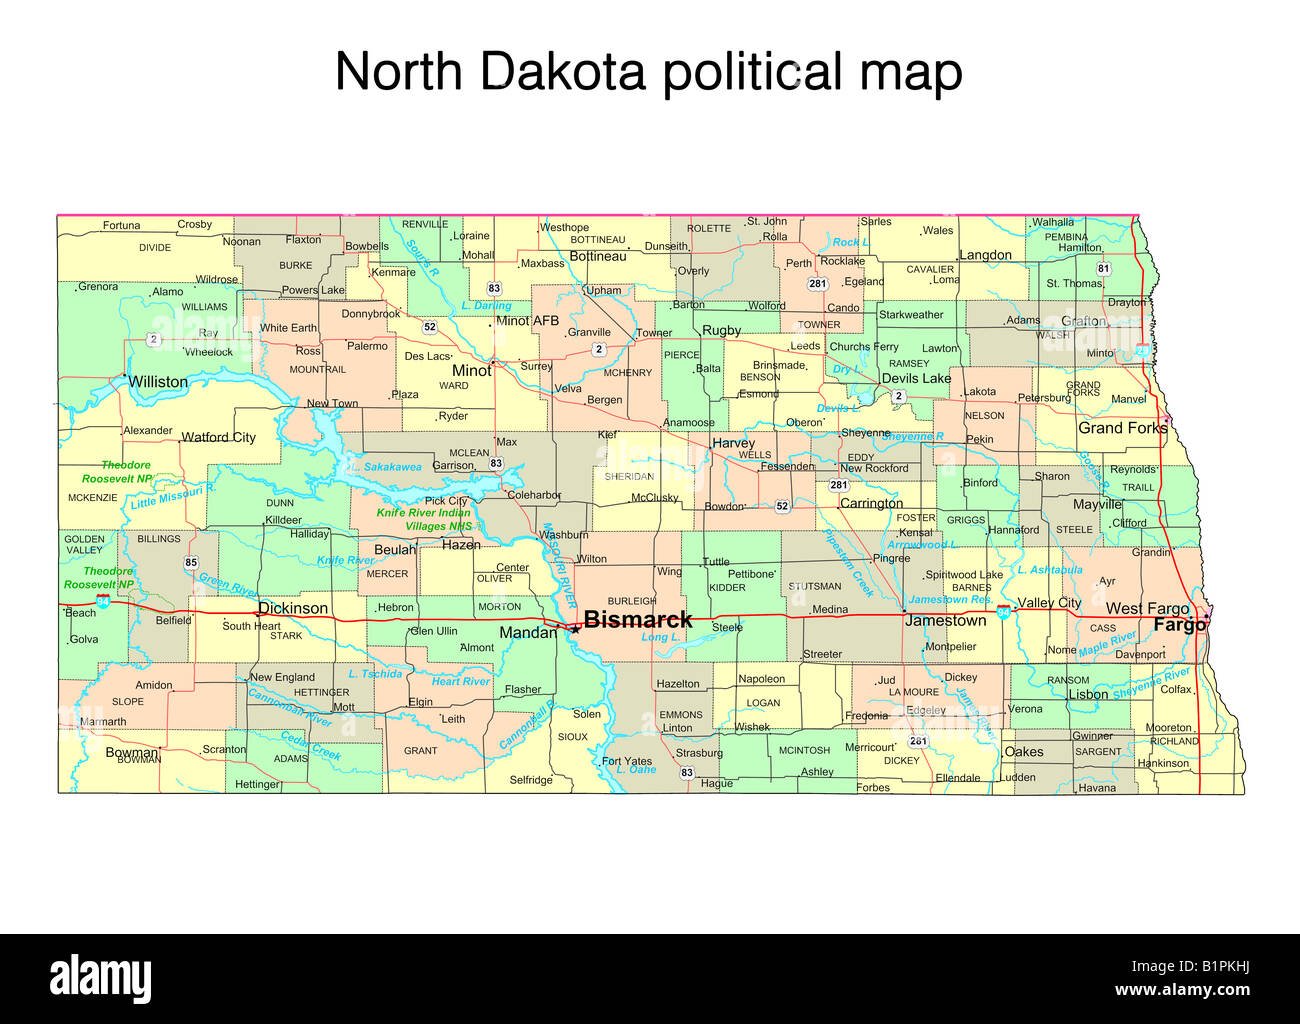 North Dakota state political map Stock Photo Royalty Free Image